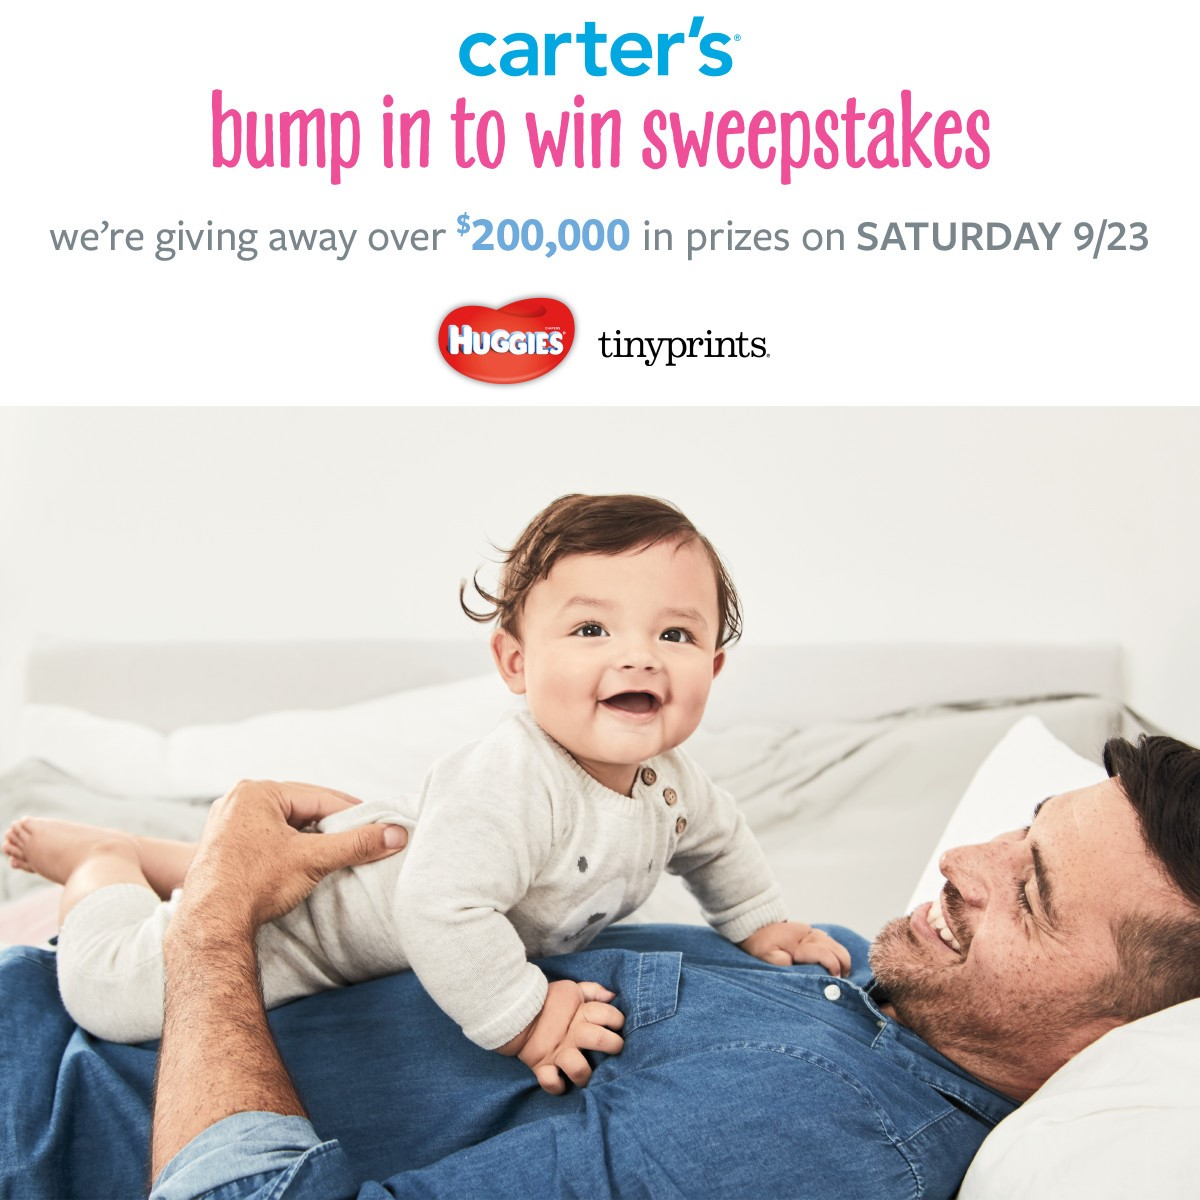 Carter's Bump In to Win Sweepstakes - Carter's Bump In to Win Sweepstakes - Don't forget to Bump In to Win It on Saturday, September 23rd - Baby Clothes and Items perfect for Baby Shower Gifts, Birthday Gifts, and Christmas Gifts